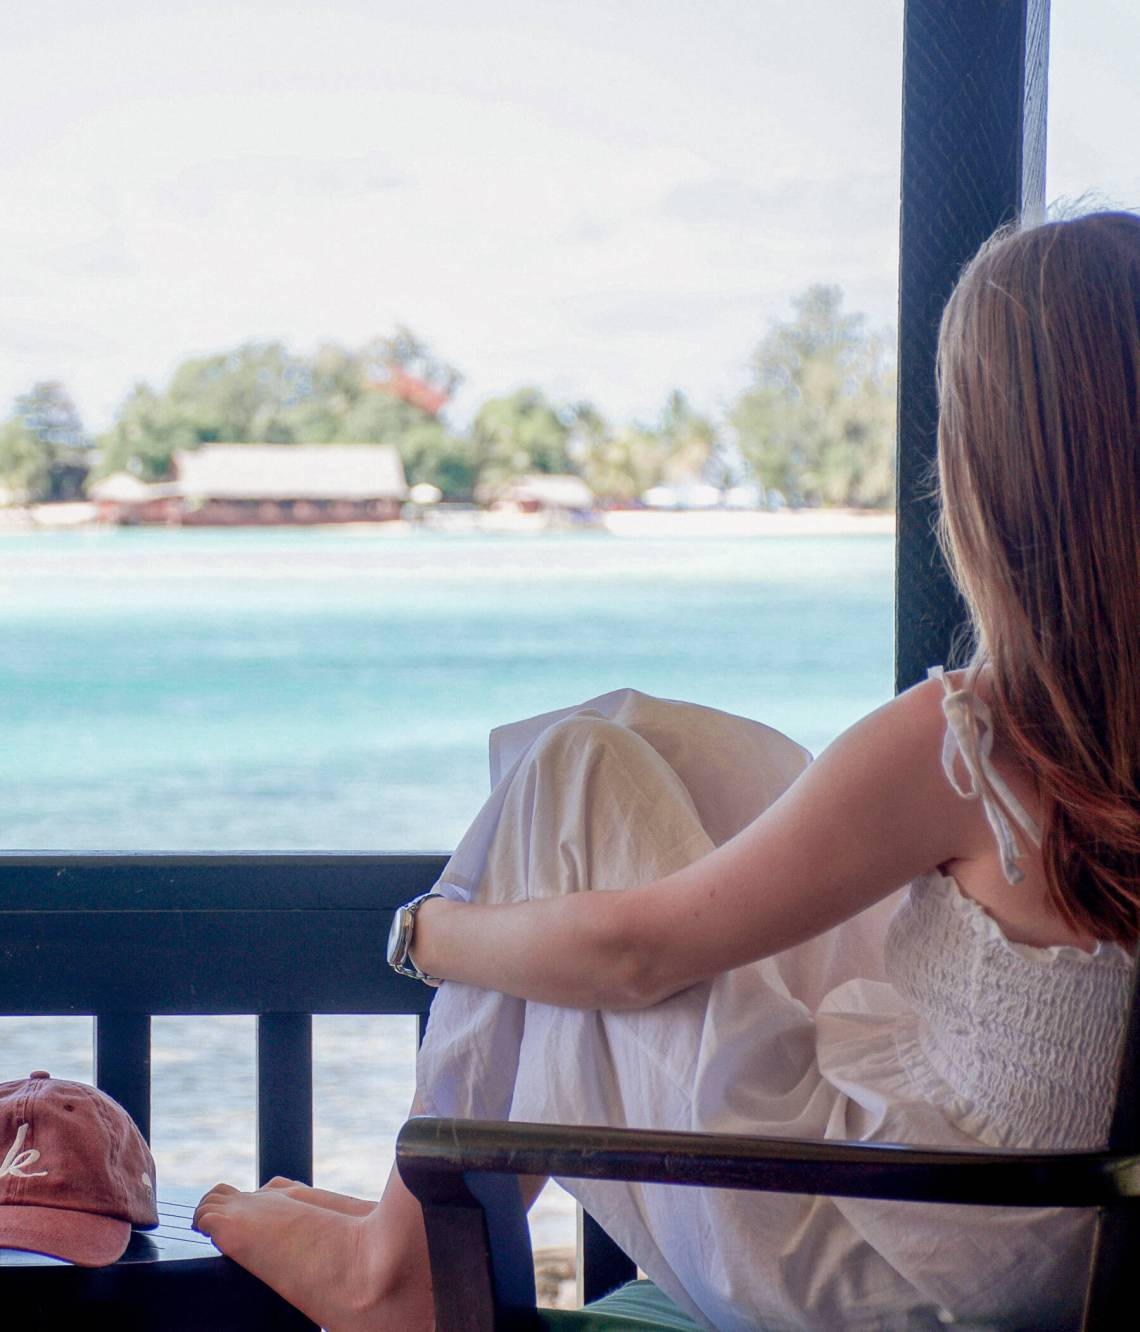 A girl sitting at her deck overlooking the ocean with an island in the distance